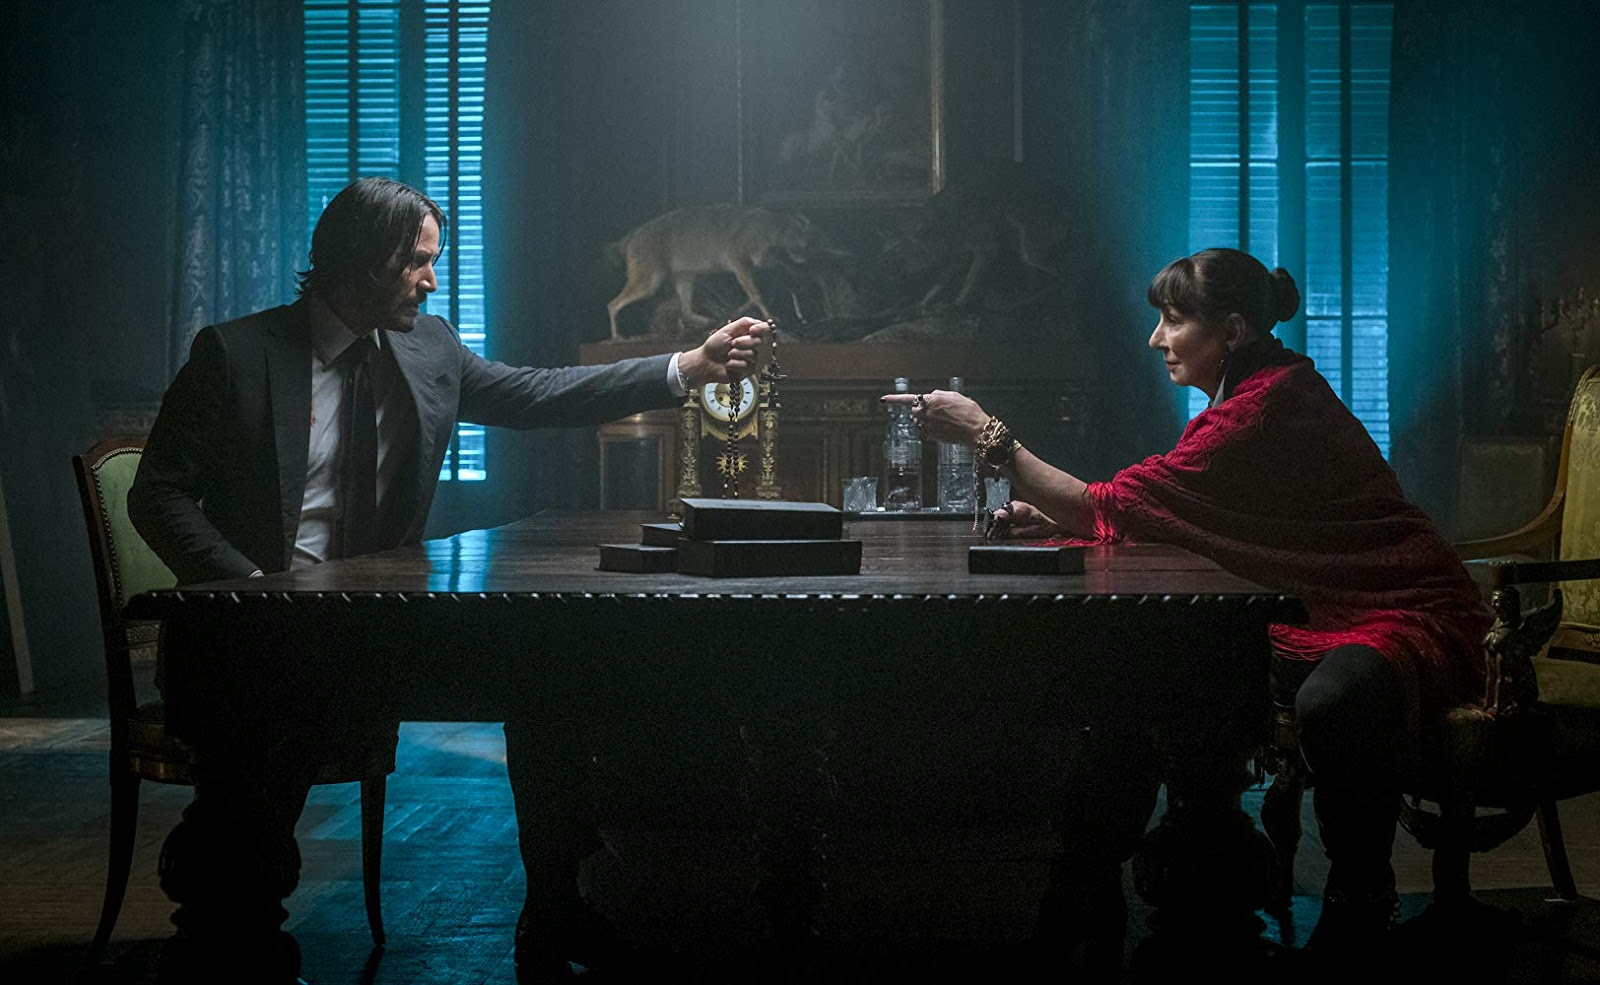 John Wick, John Wick Chapter 3, Parabellum, Keanu Reeves, Halle Berry, Action, Rawlins GLAM, Movie Review by Rawlins, Laurence Fishburne,